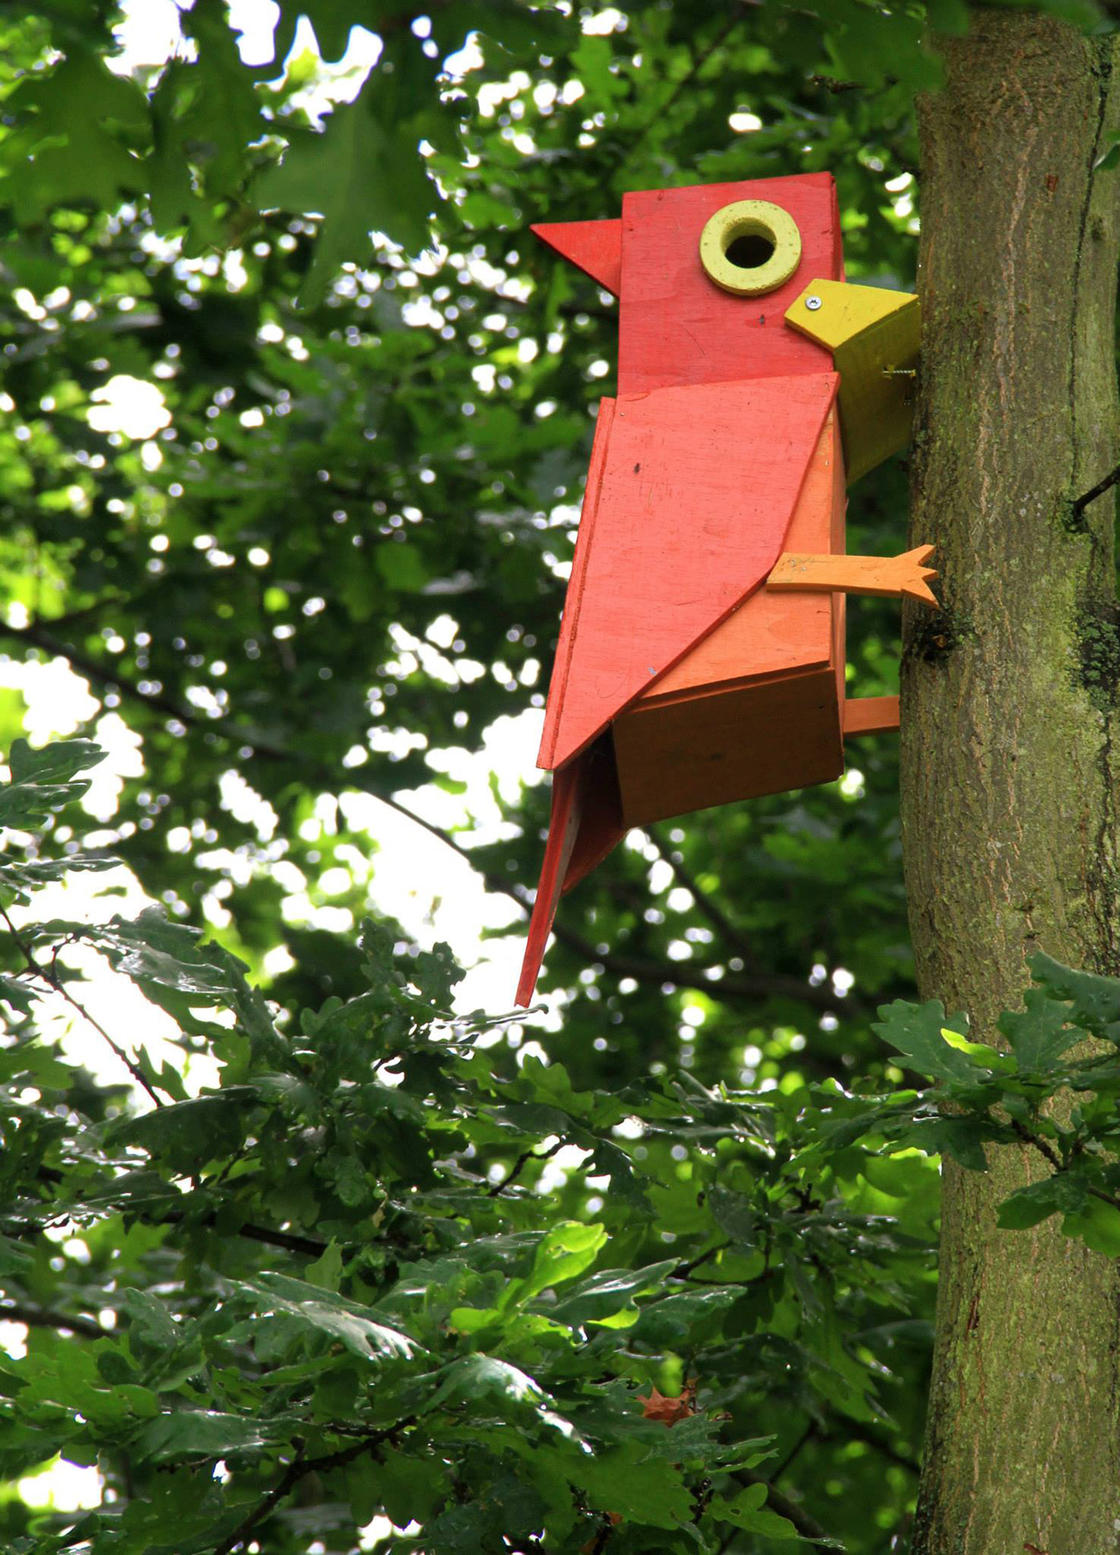 This street artist has built more than 3500 urban bird houses!